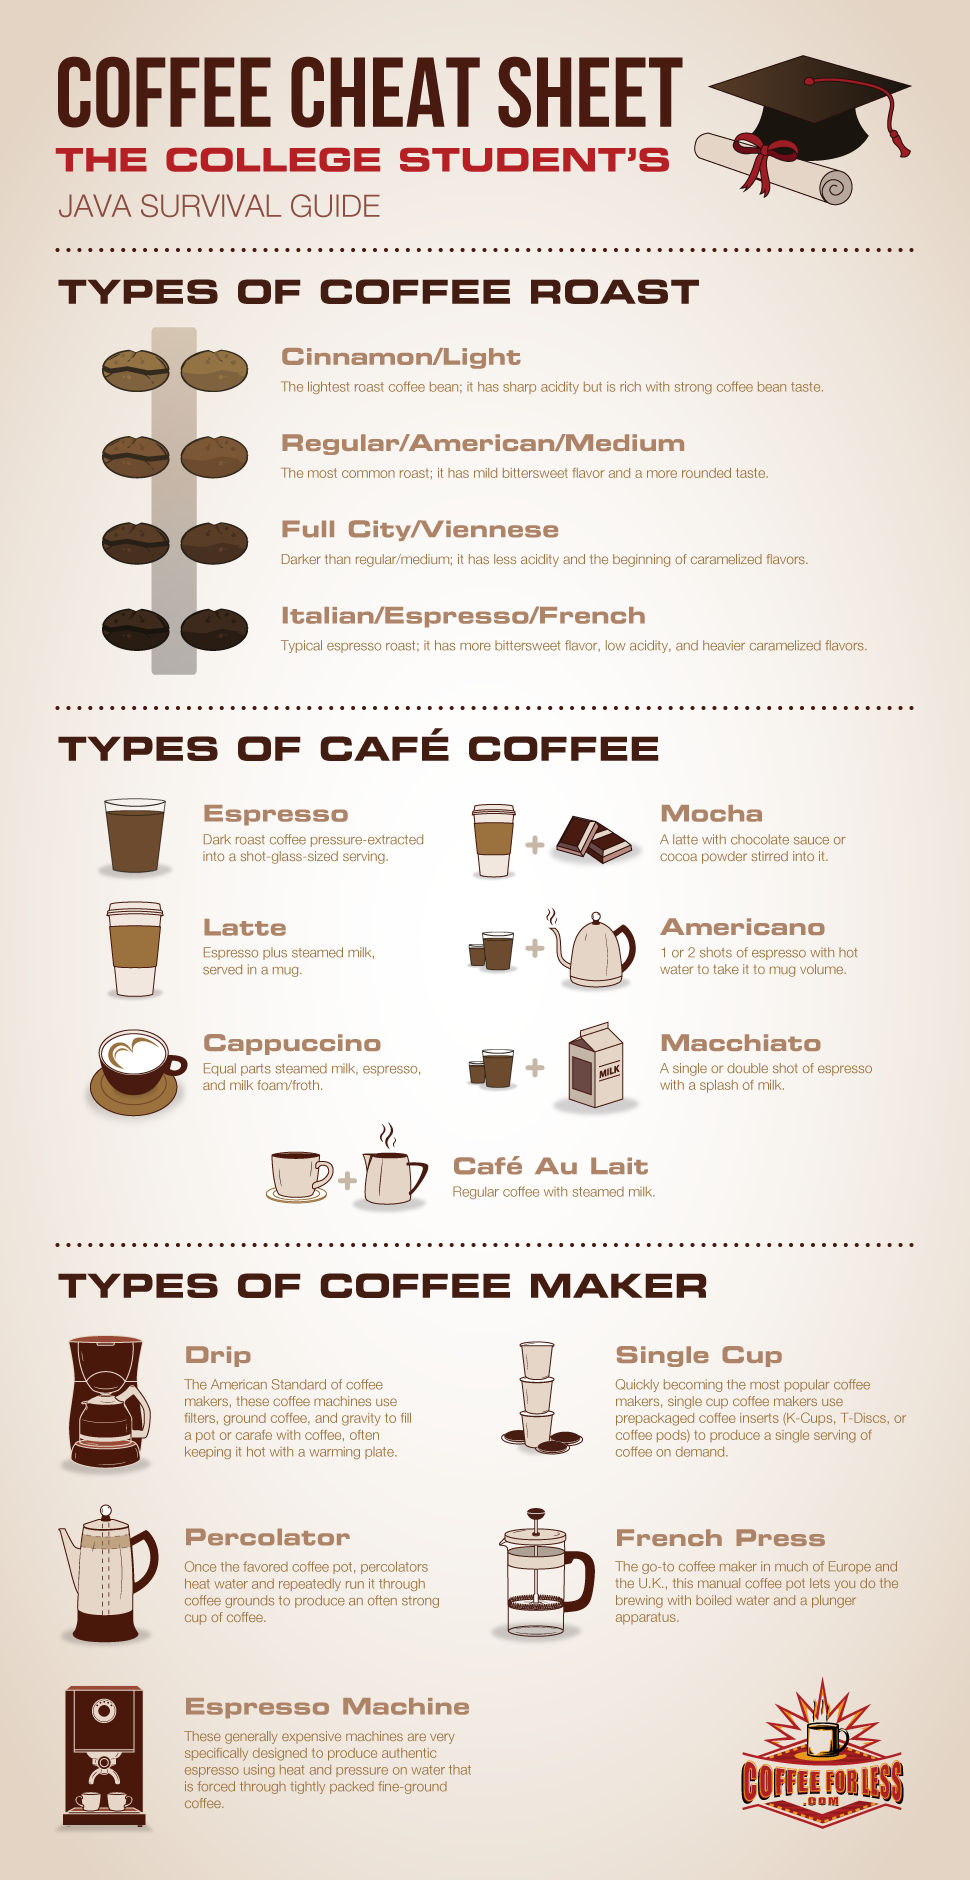 Coffee Cheat Sheet The College Student's Java Survival